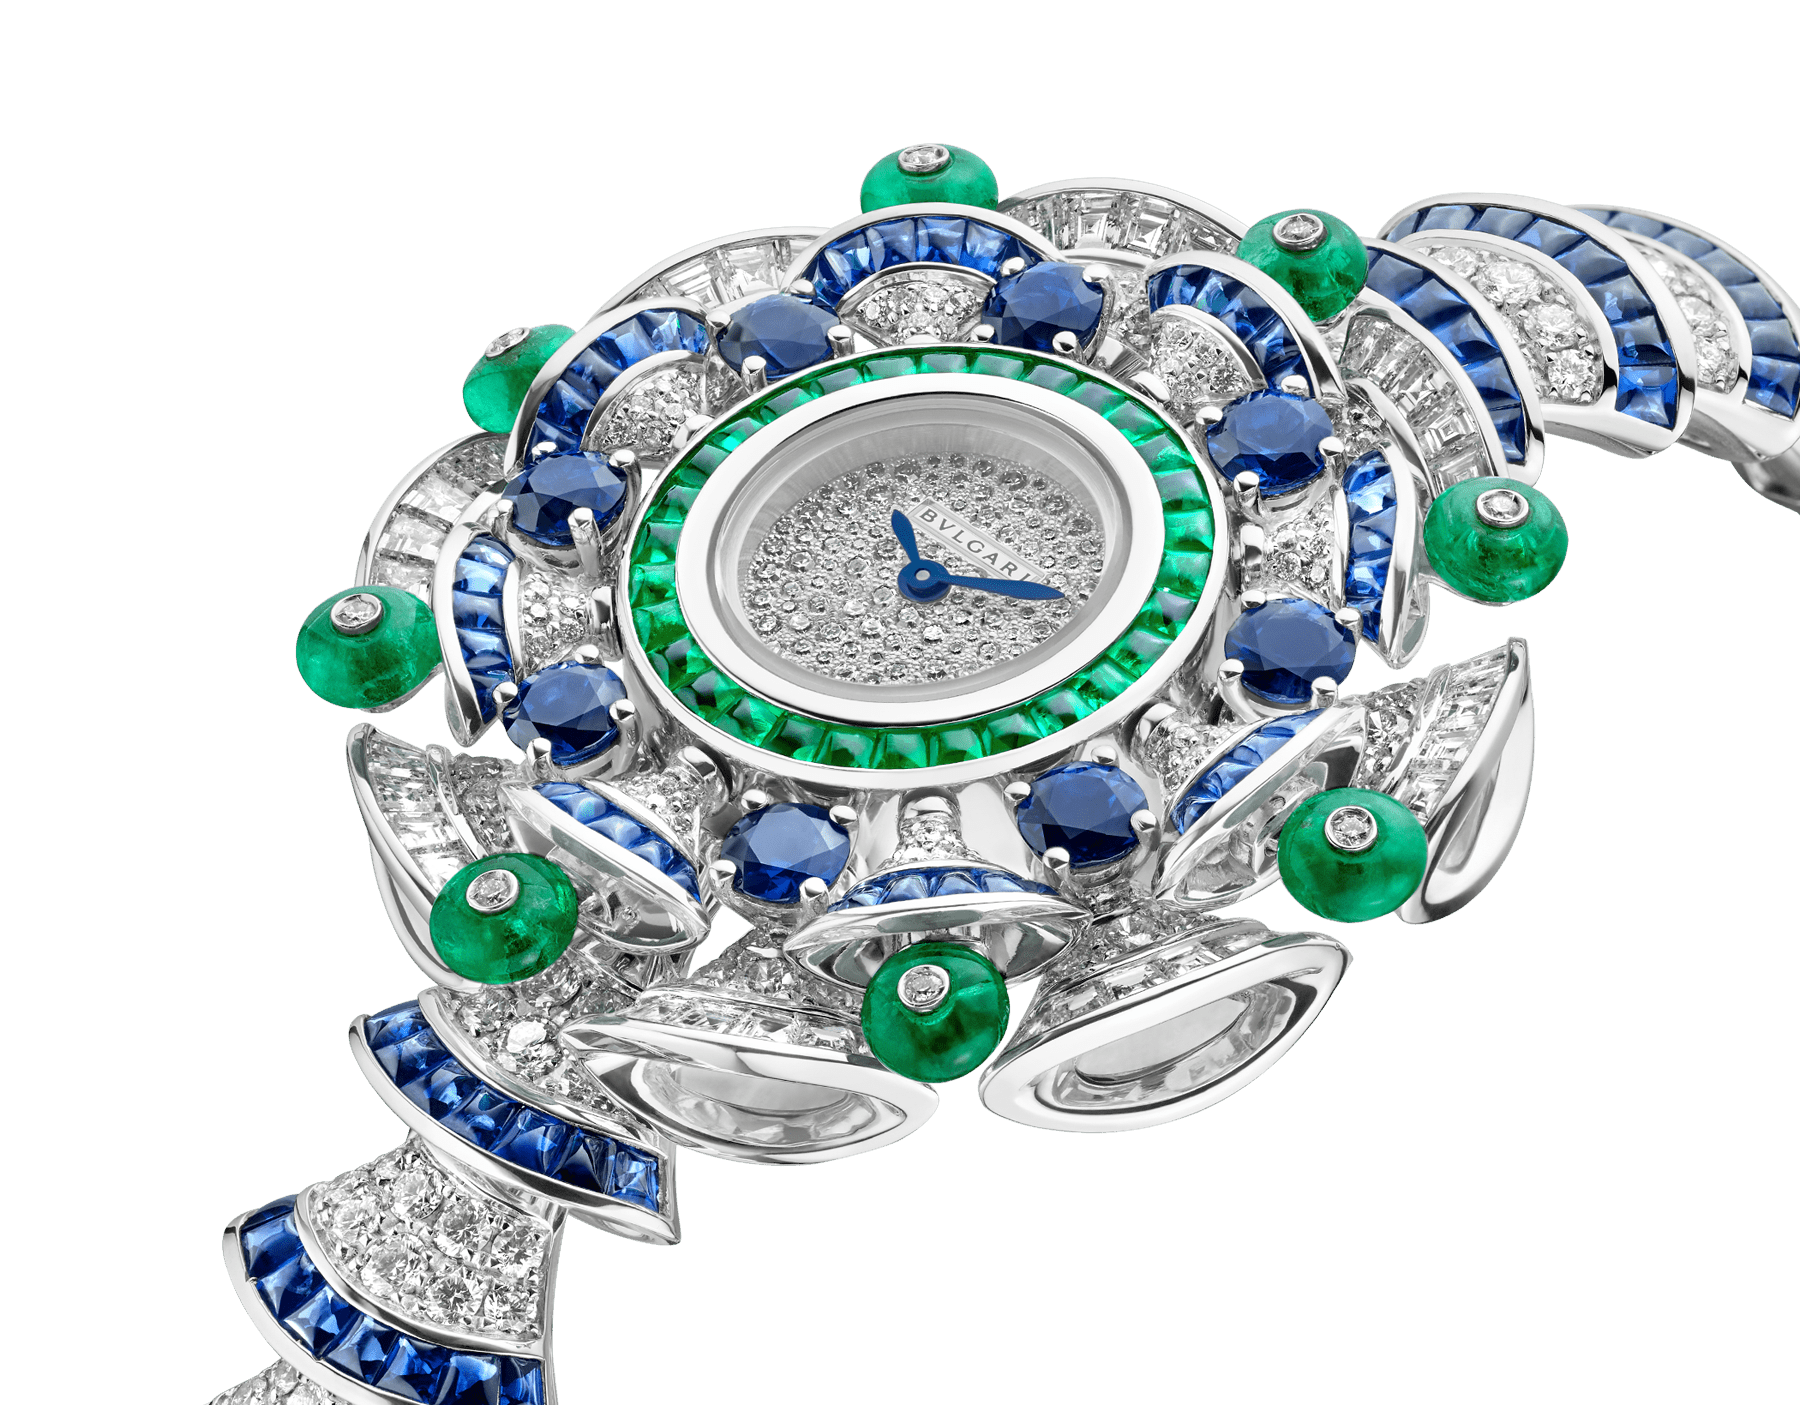 DIVAS' DREAM watch with 18 kt white gold case set with baguette and brilliant-cut diamonds, round and buff-cut sapphires, buff-cut emeralds and emeralds beads, snow pavé dial, 18 kt white gold bracelet set with brilliant-cut diamonds and buff-cut sapphires 102220 image 2